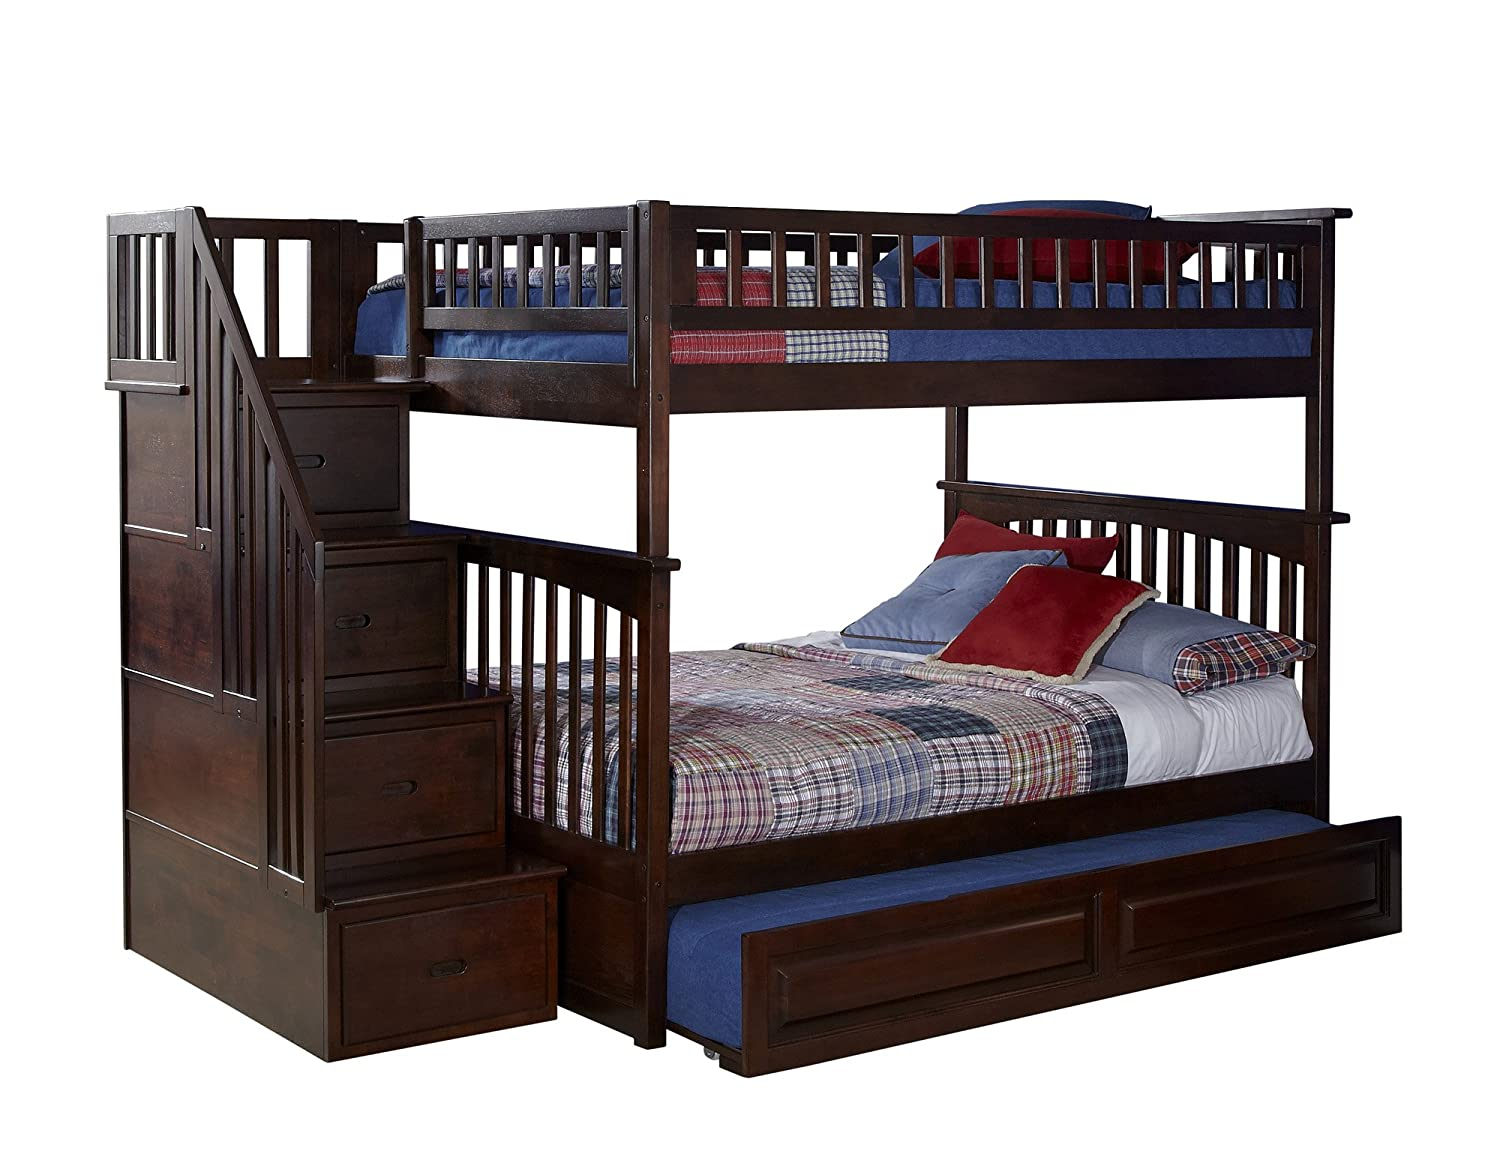 drawers bed furniture beds over gothic image w pine bunk twin full